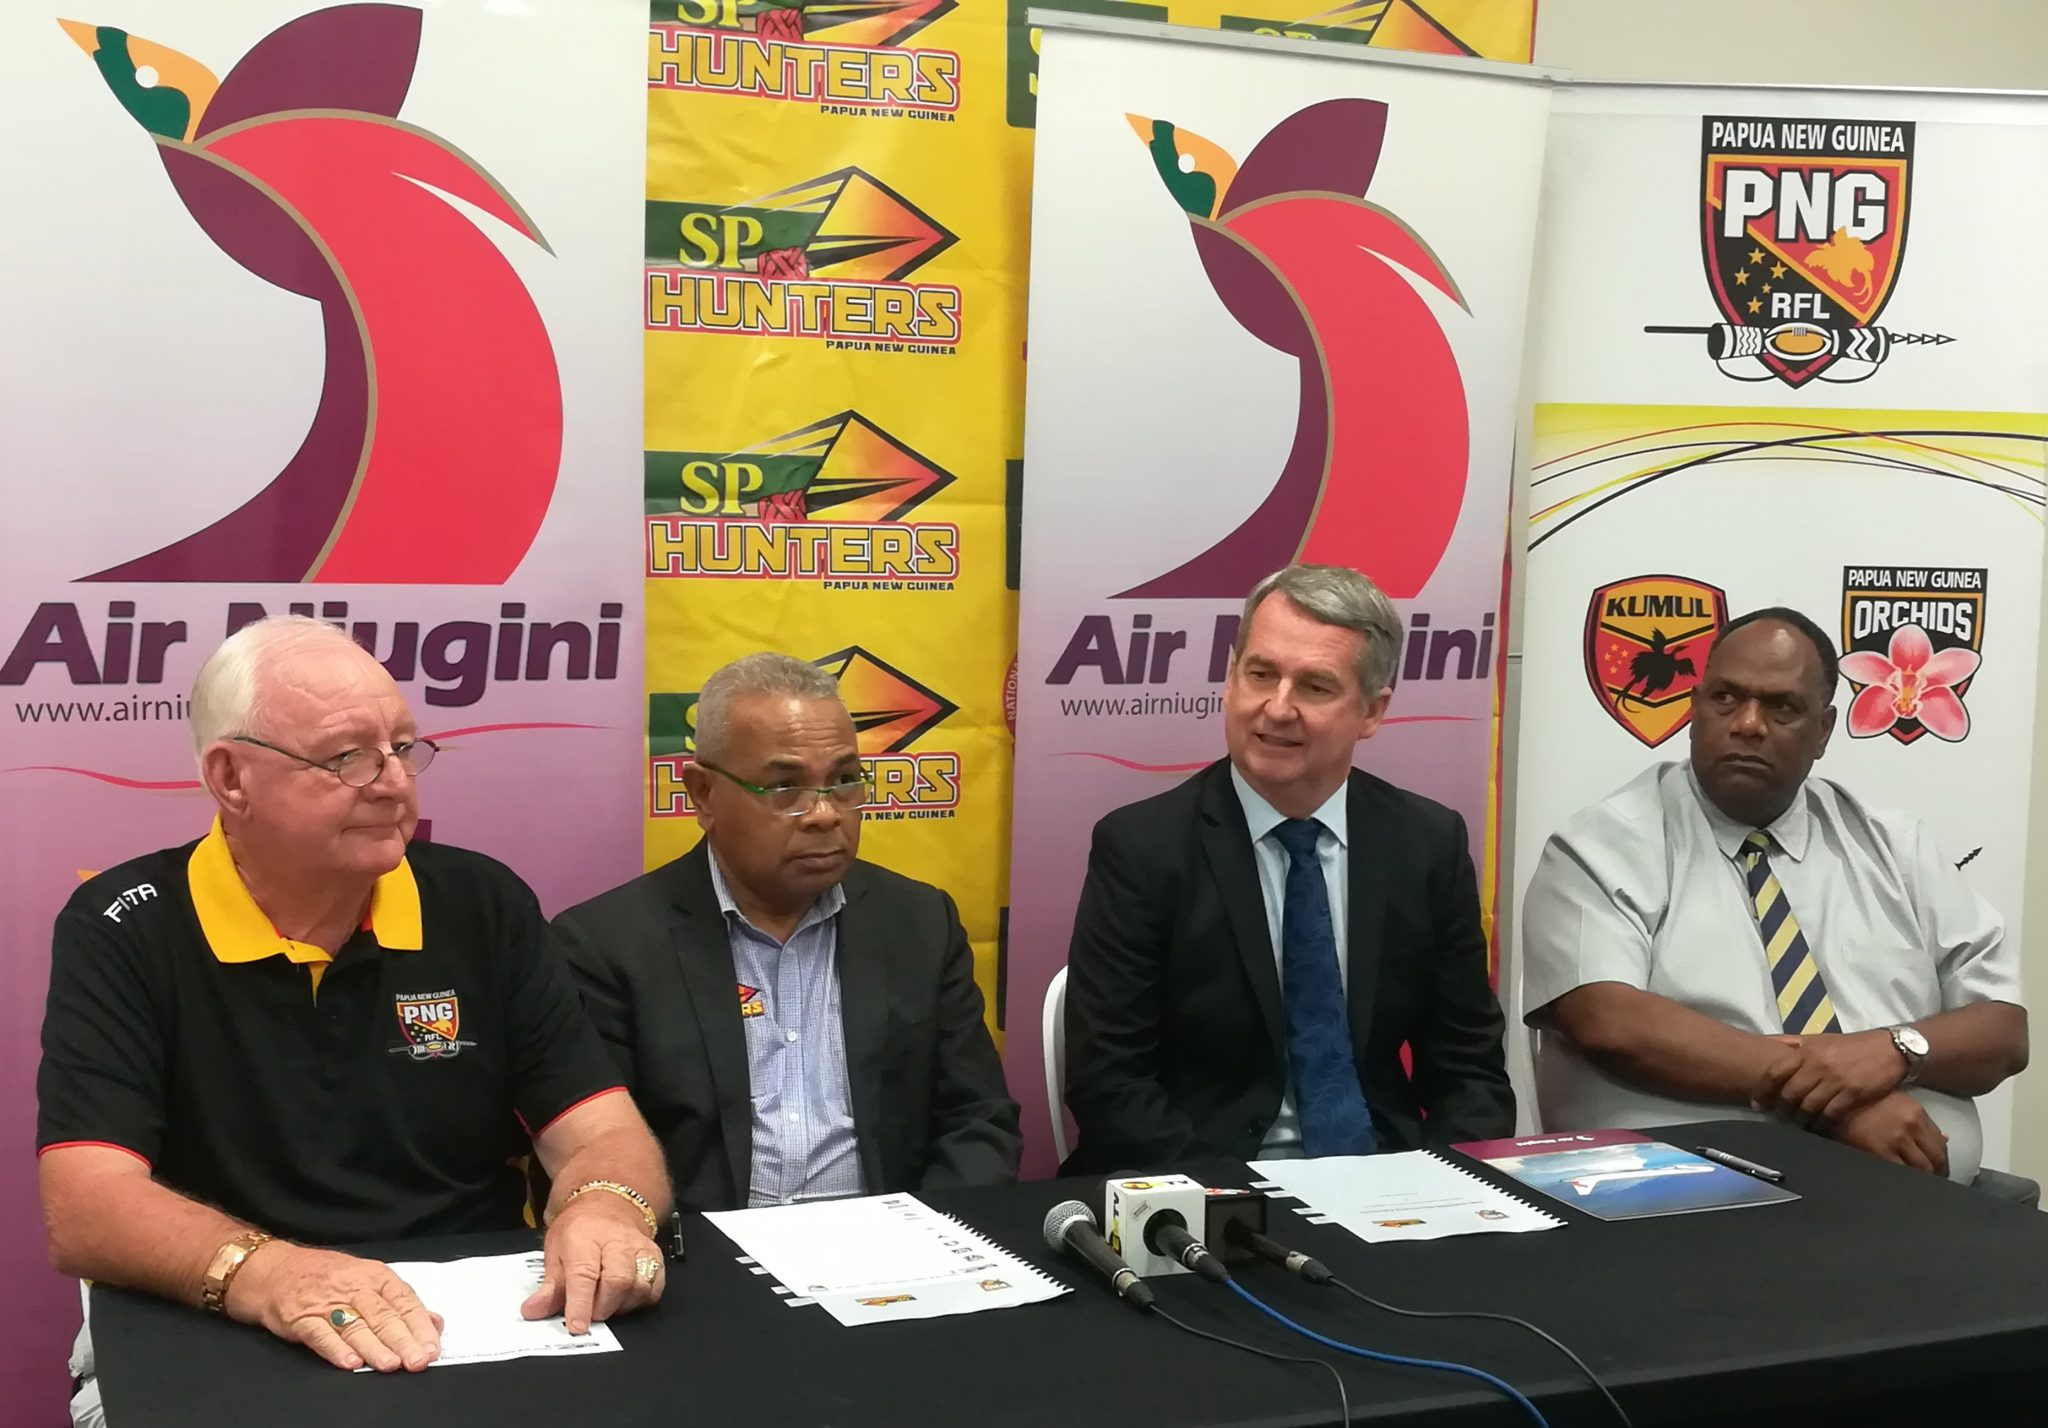 Air Niugini And PNGRFL Extend Travel Sponsorship